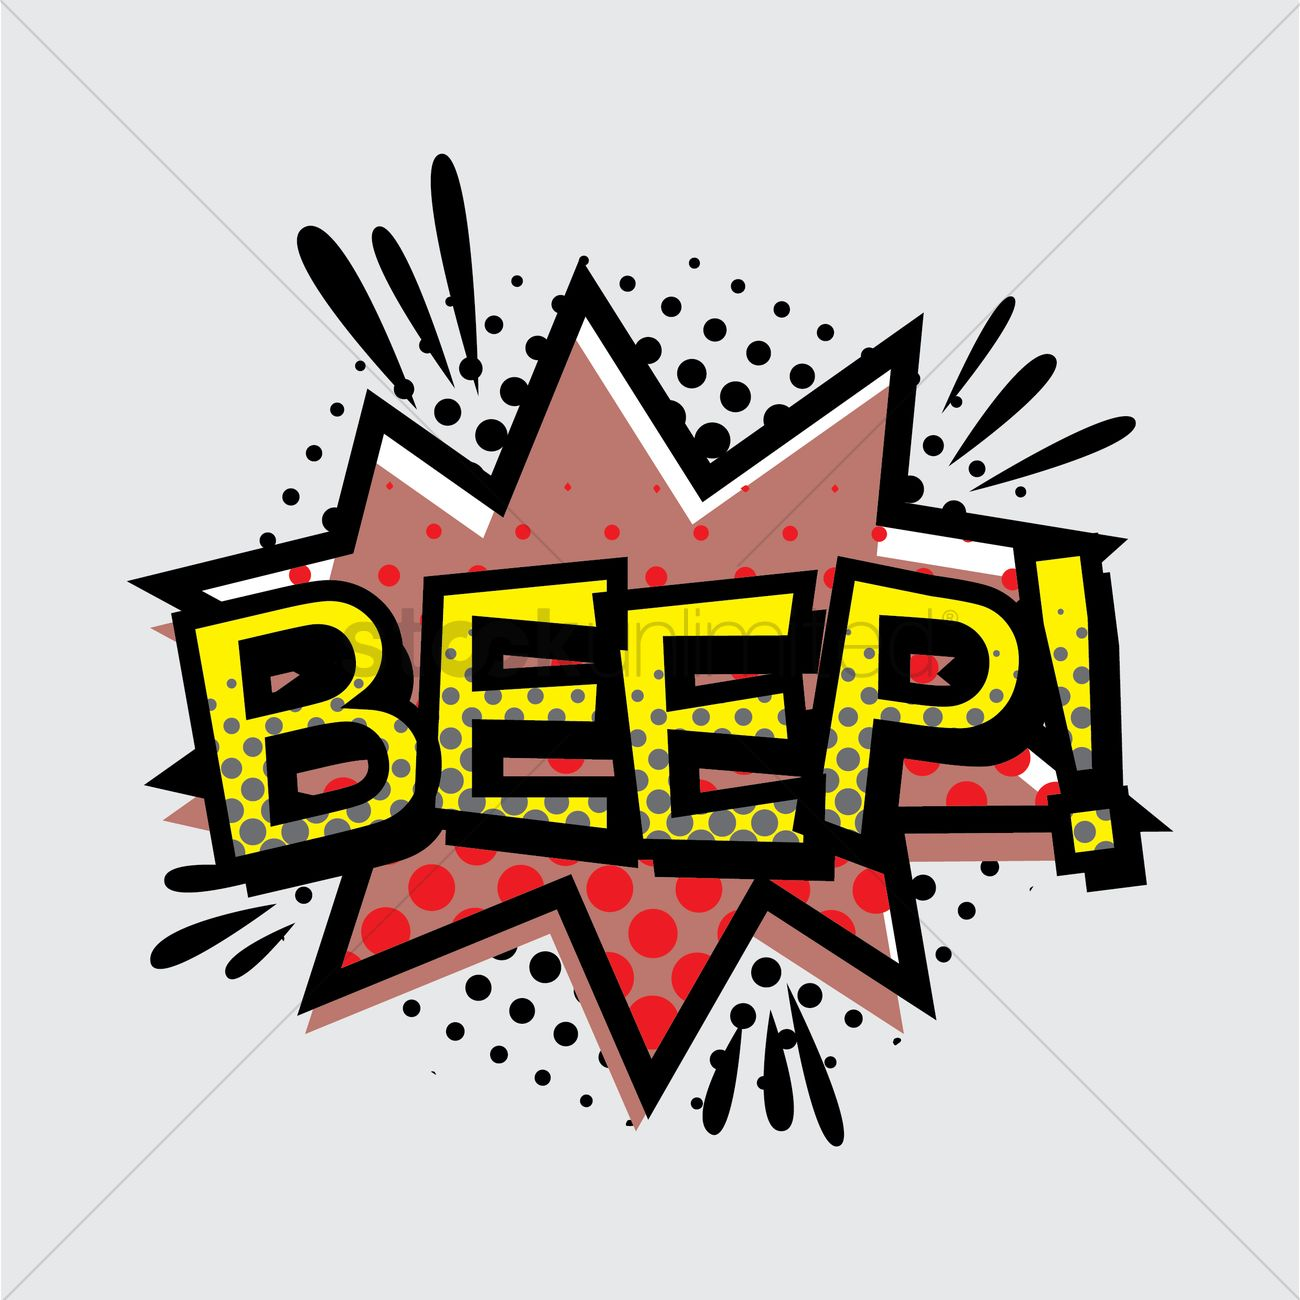 Beep text with comic effect Vector Image.